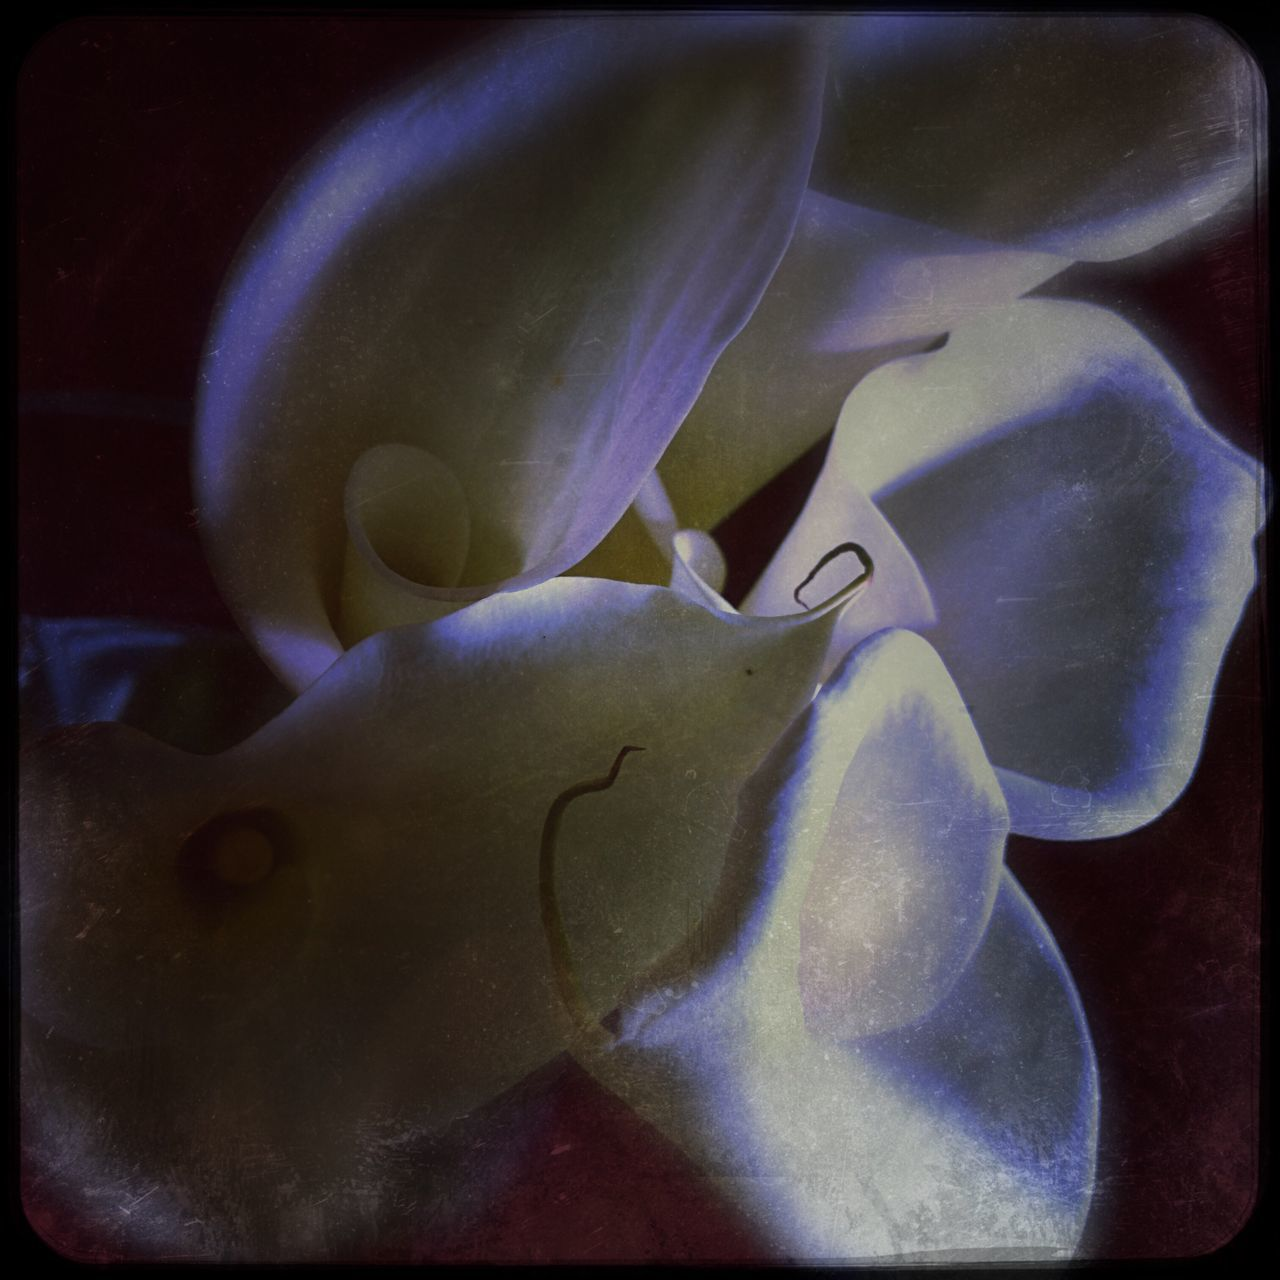 Nature Water Fragility Underwater Beauty In Nature Close-up Sea Life Flower No People Animal Themes Freshness Animals In The Wild Flower Head UnderSea Aquarium Sea Anemone Outdoors Day Calla Lily